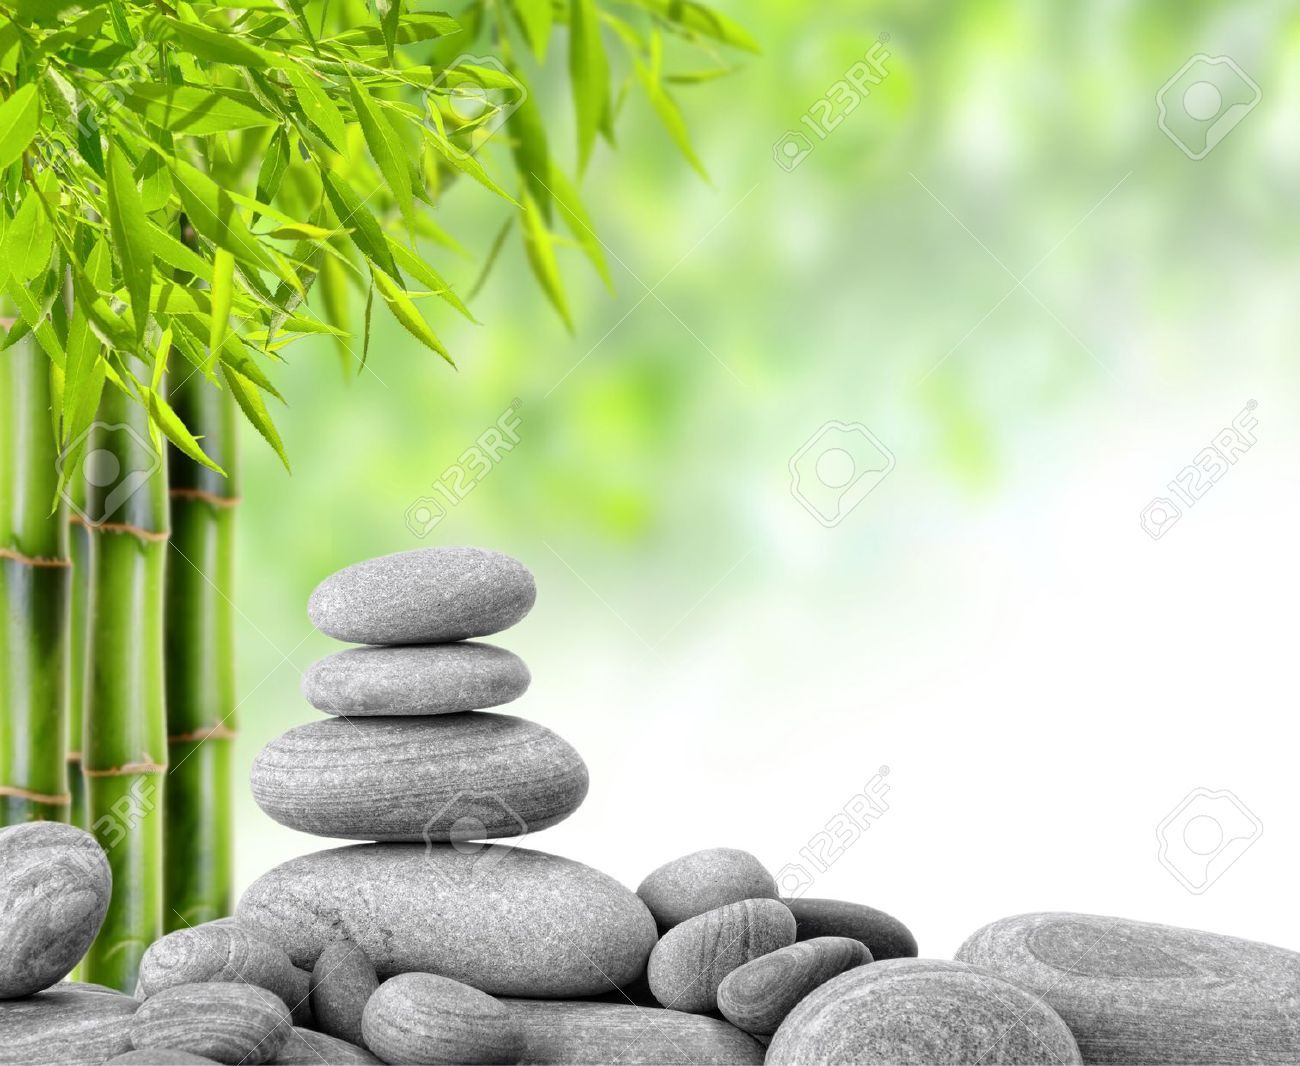 Zen Wallpaper 1920x1080: Top Free Zen Bamboo Backgrounds